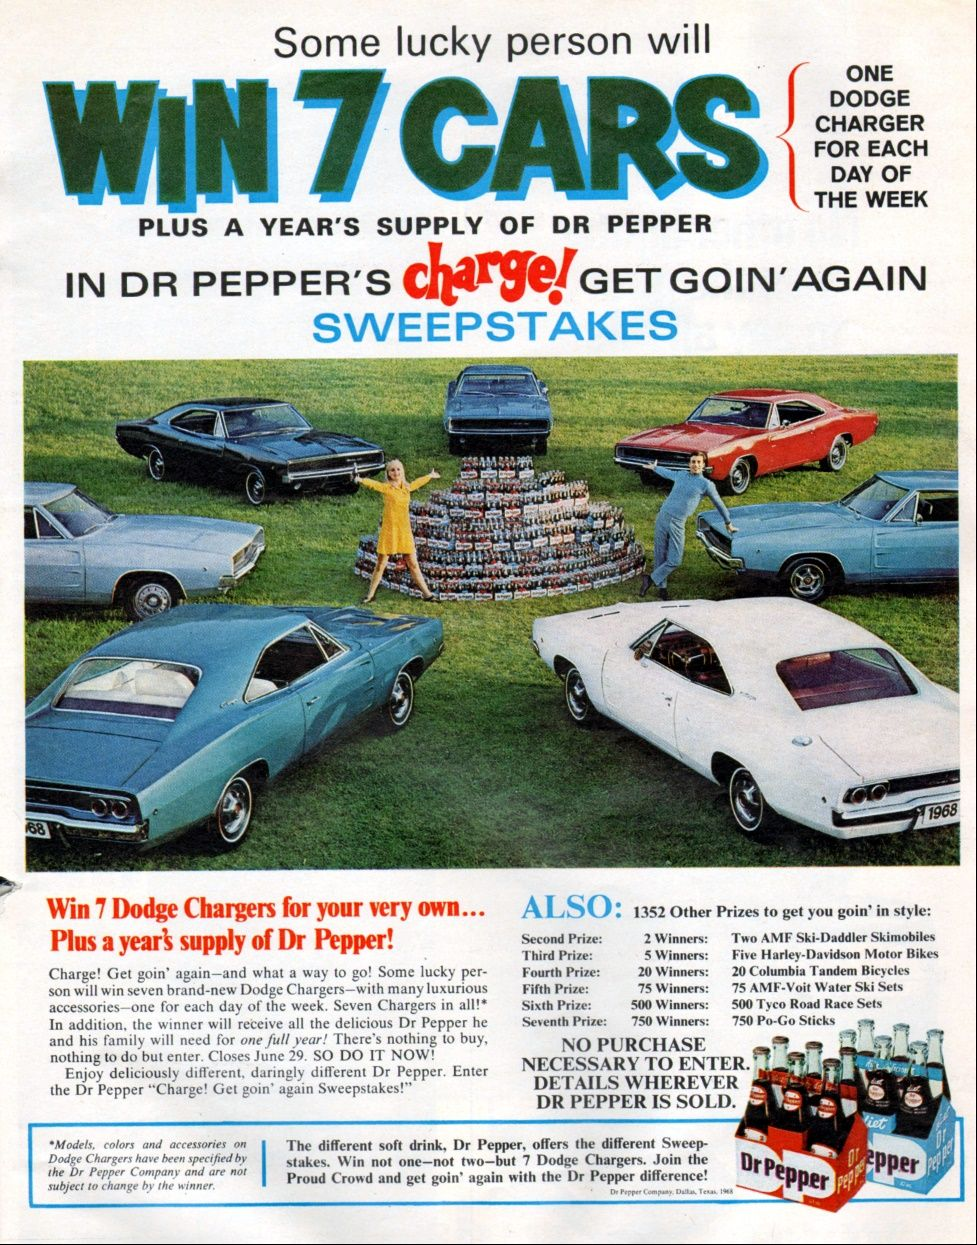 Dr Pepper 1968 Vintage Soft Drink Advertisements Pinterest 68 Charger Gtx 440 Wiring Diagram